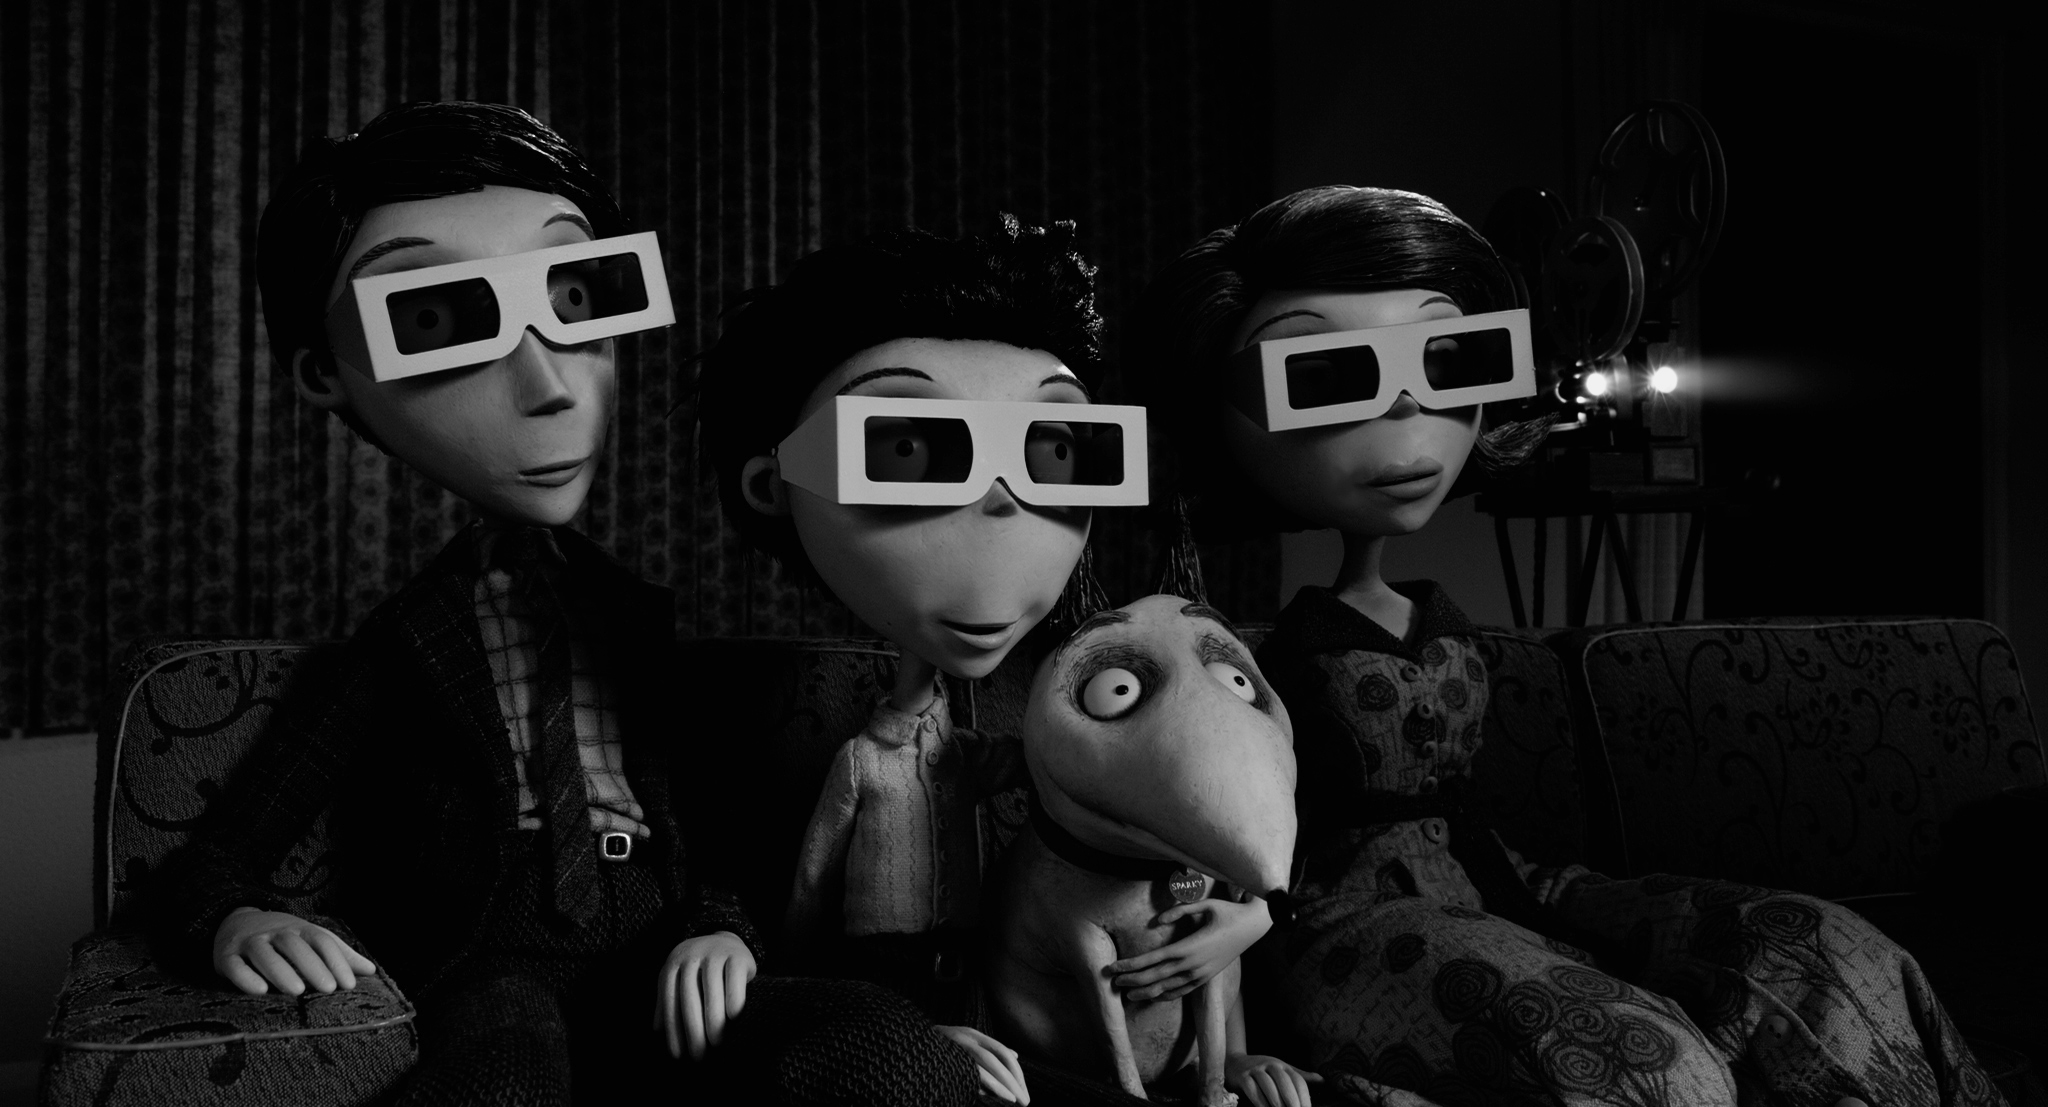 010 MF 0040 Best of the Week: Frankenweenie Everywhere, Lois Lanes History and Plenty More